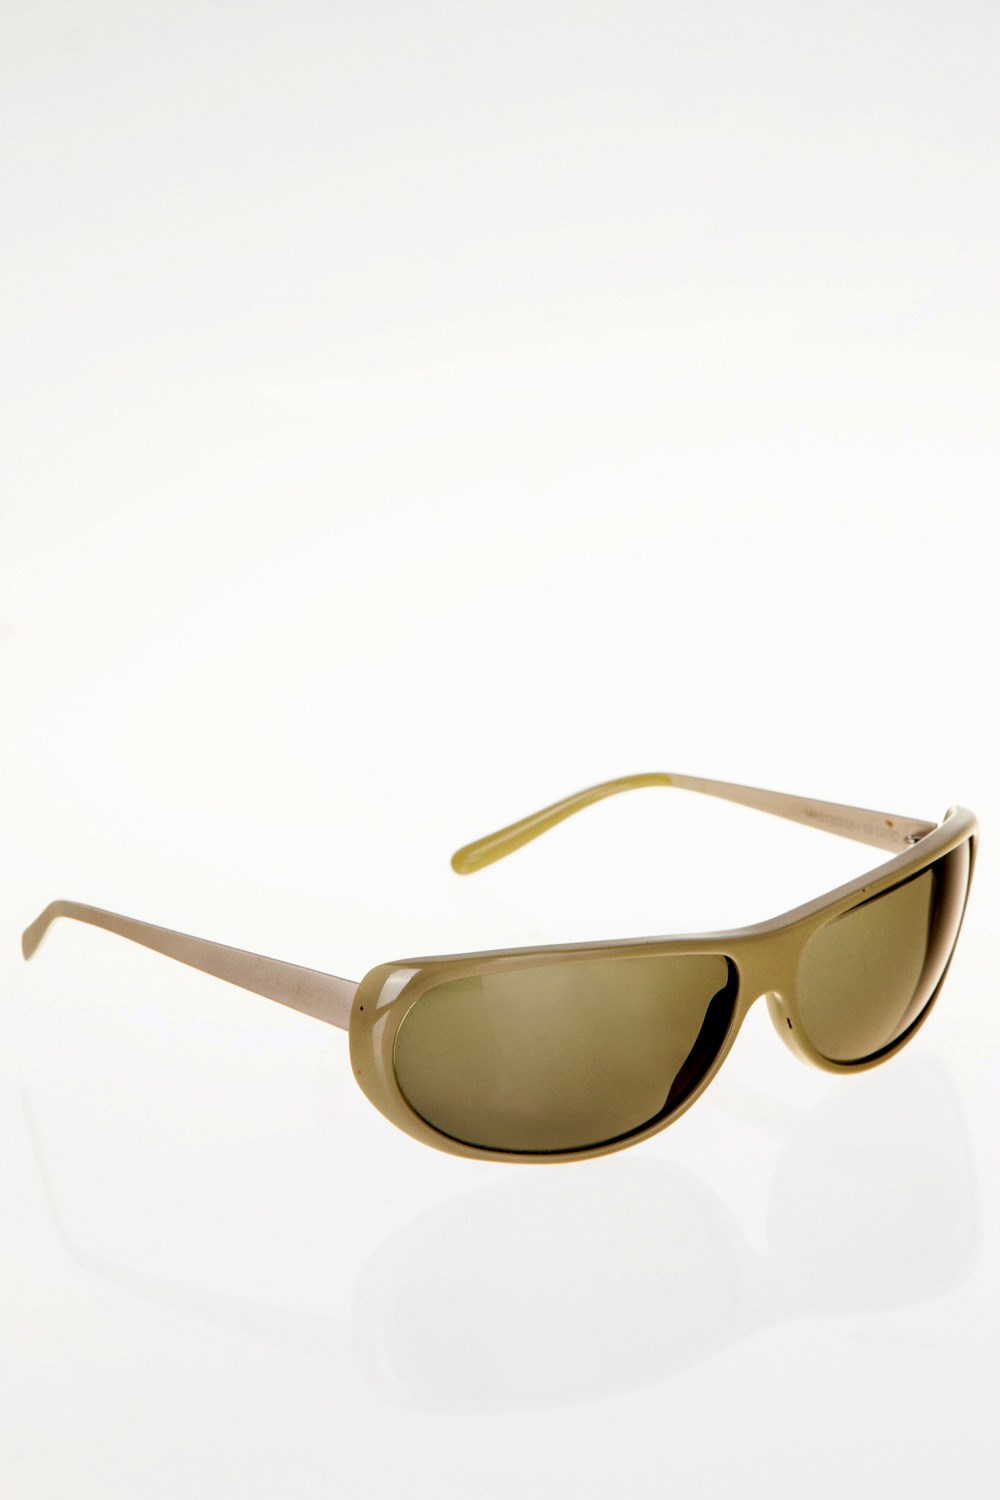 dc8e660a021 MR51202 Olive Green Acetate Sunglasses